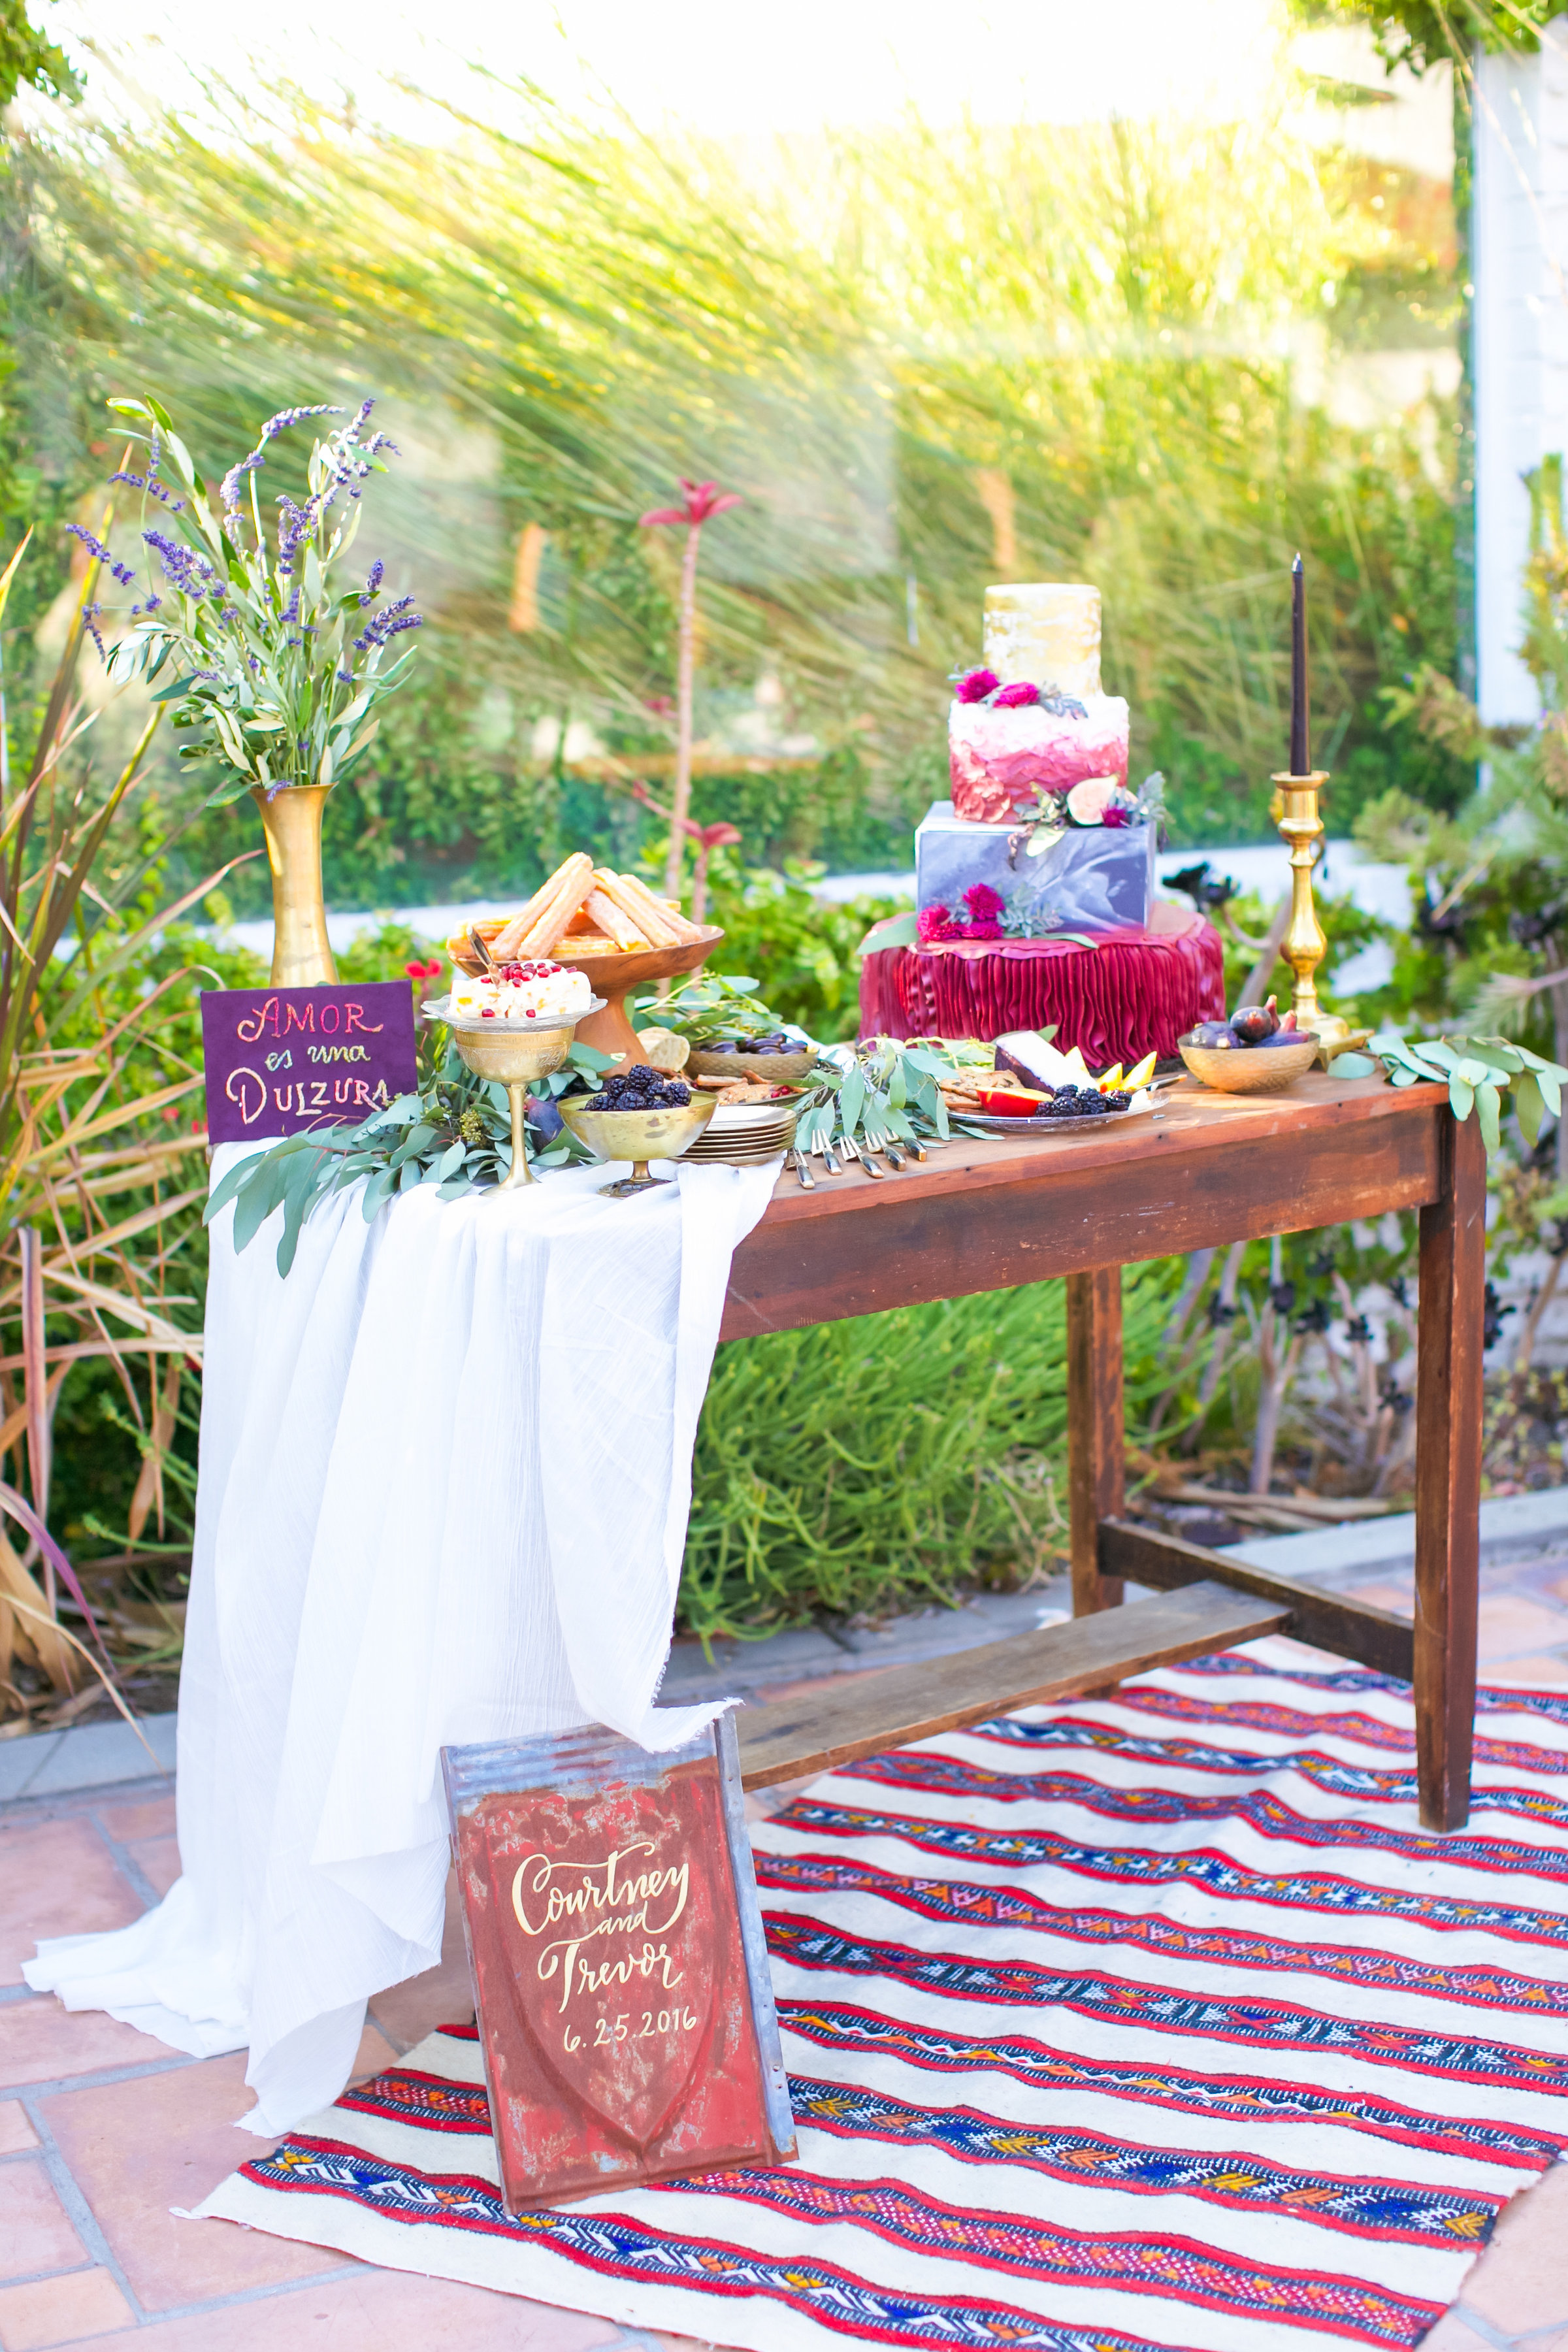 dessert table with churro bar and colorful cake